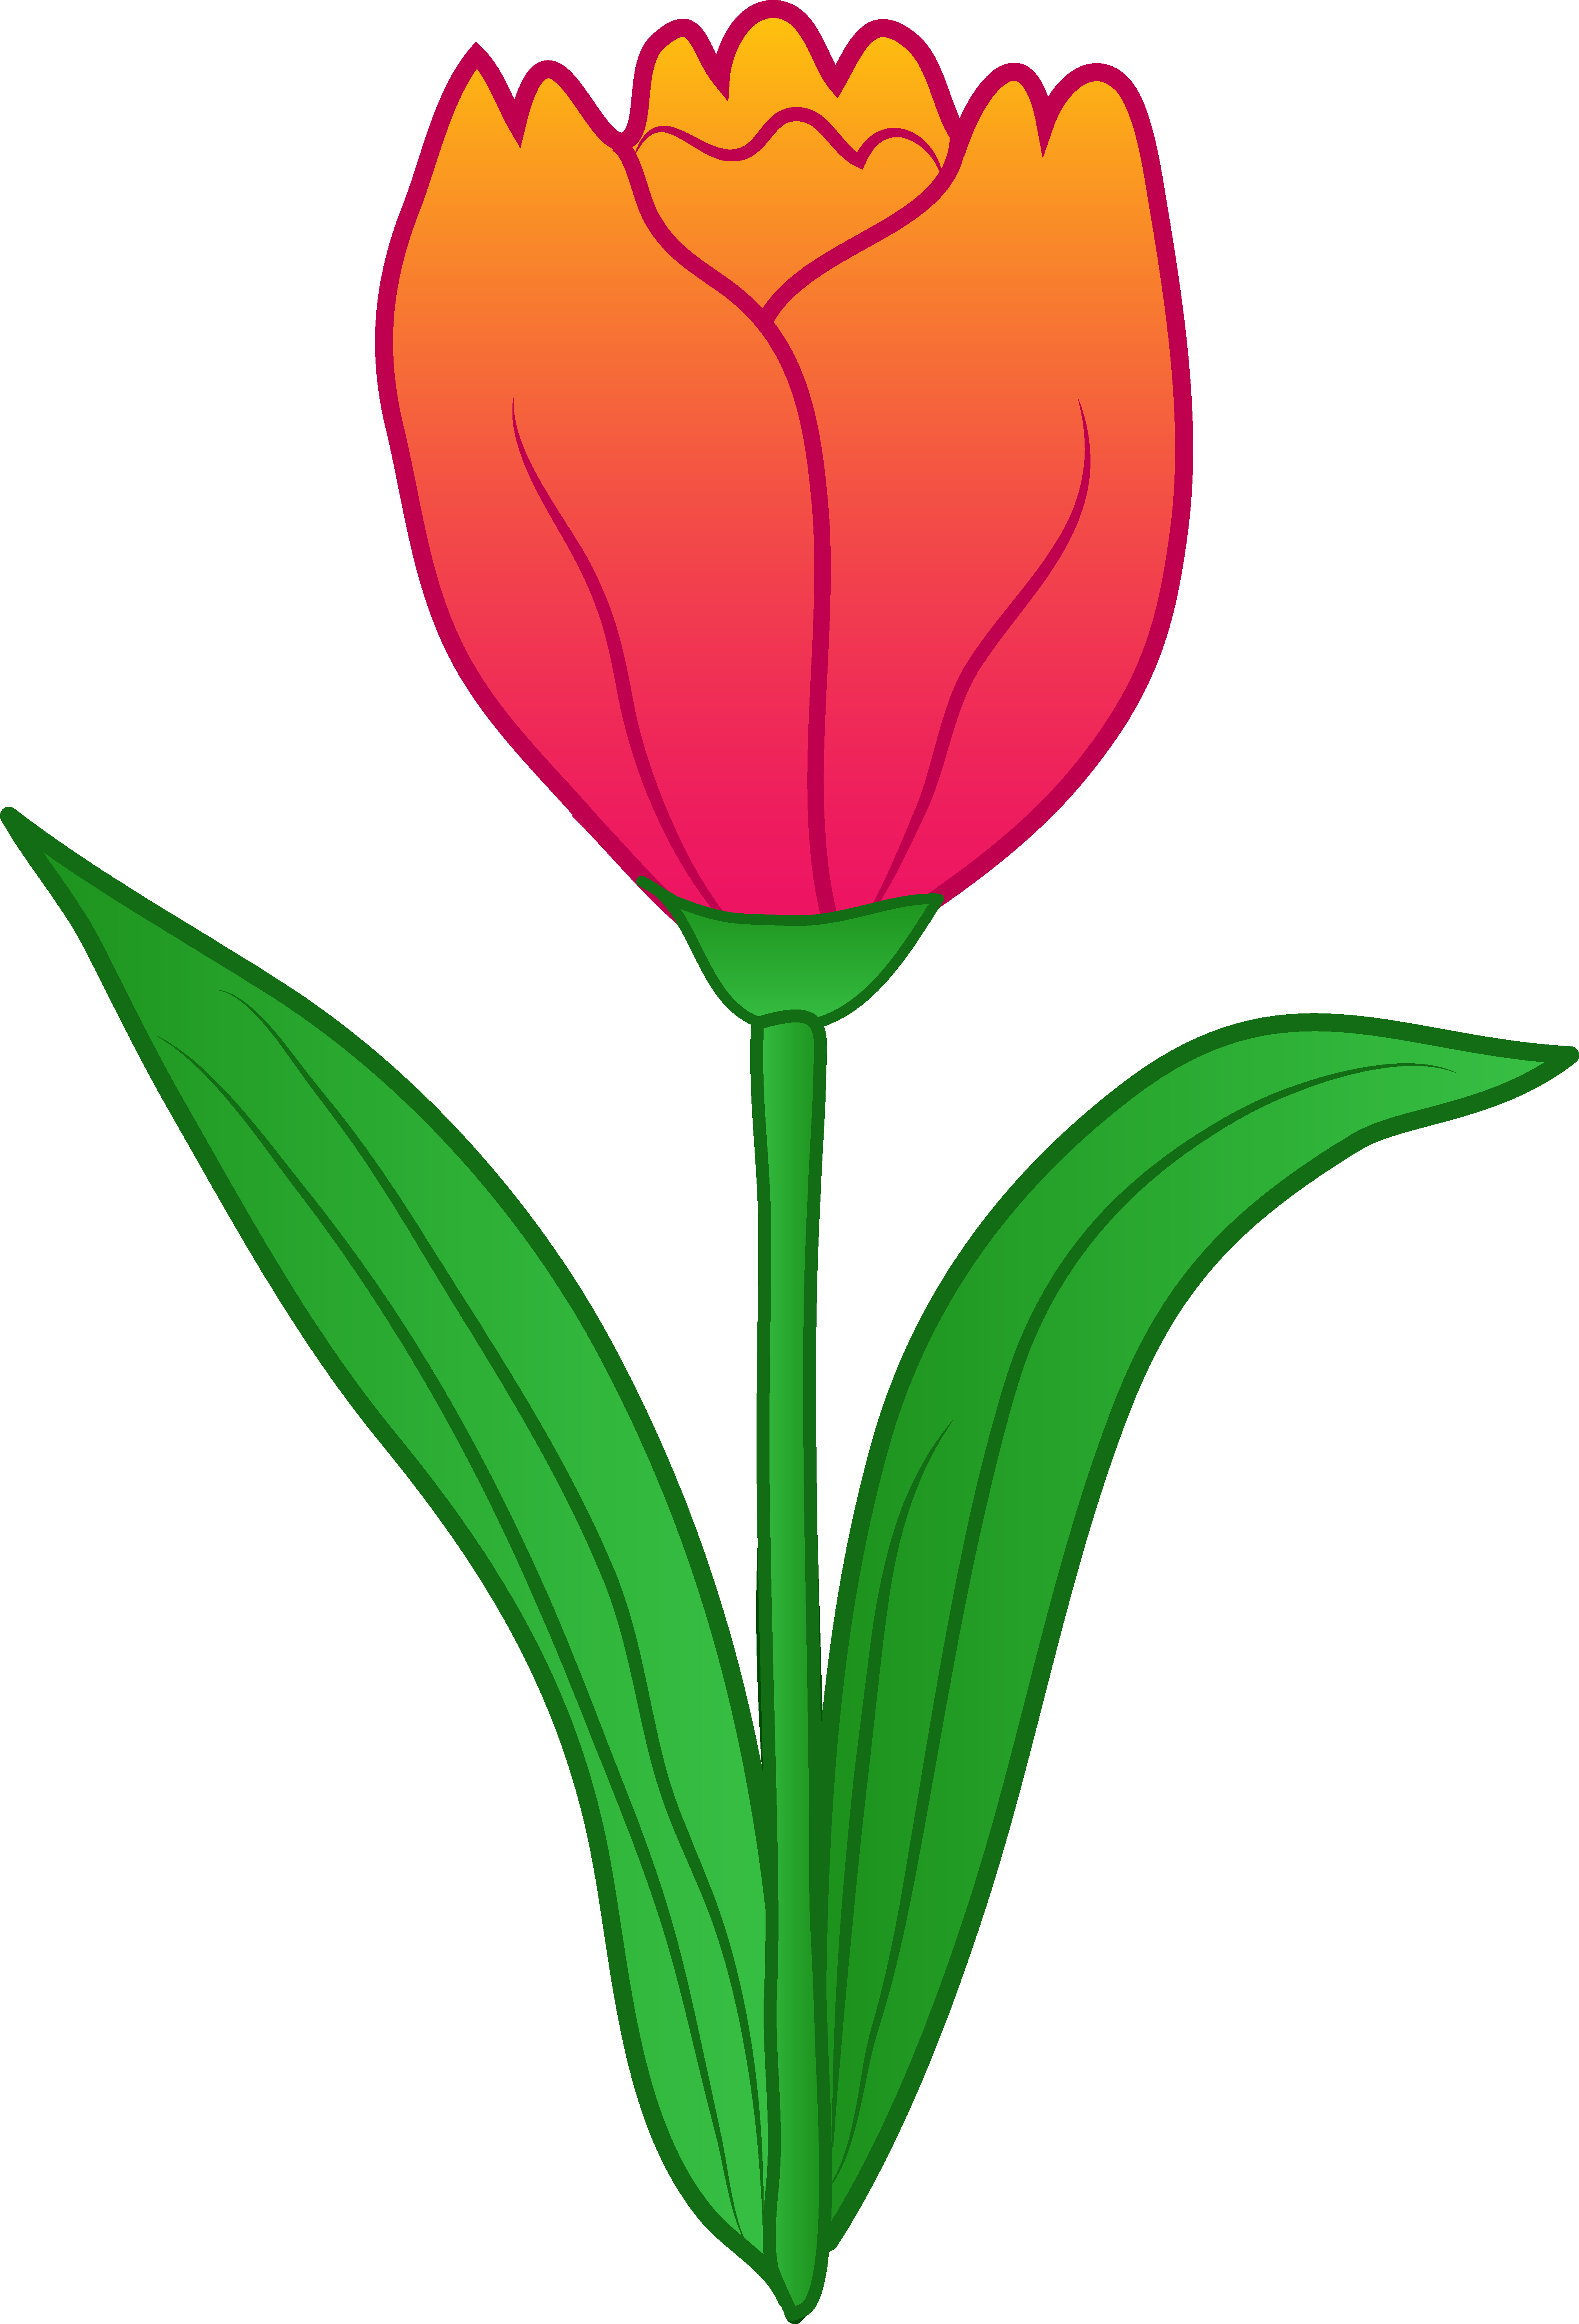 Tulip clipart #4, Download drawings